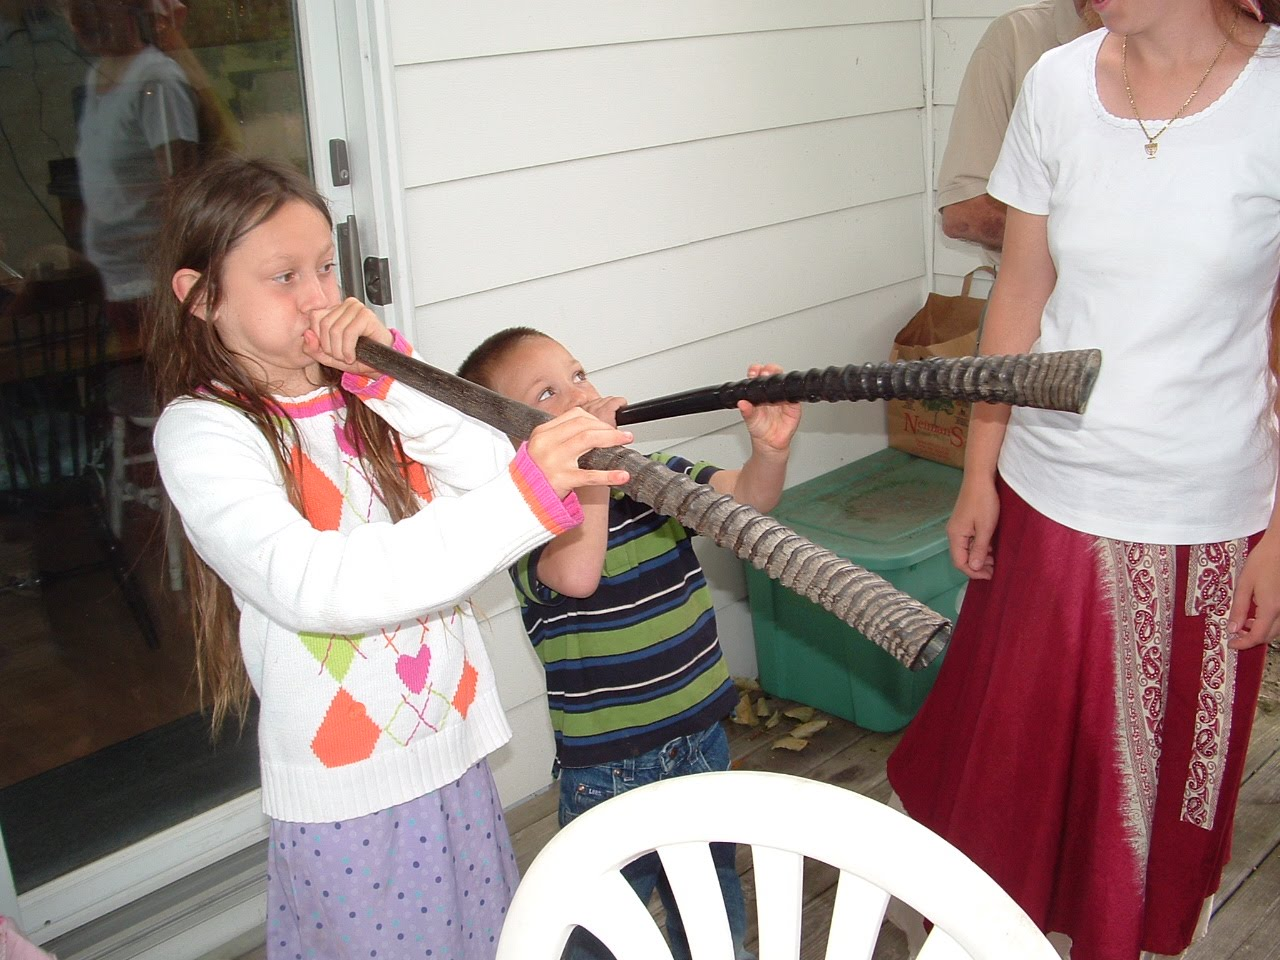 Rams Horn Shofar Sound Rams Horn Shofar Sound Sale For